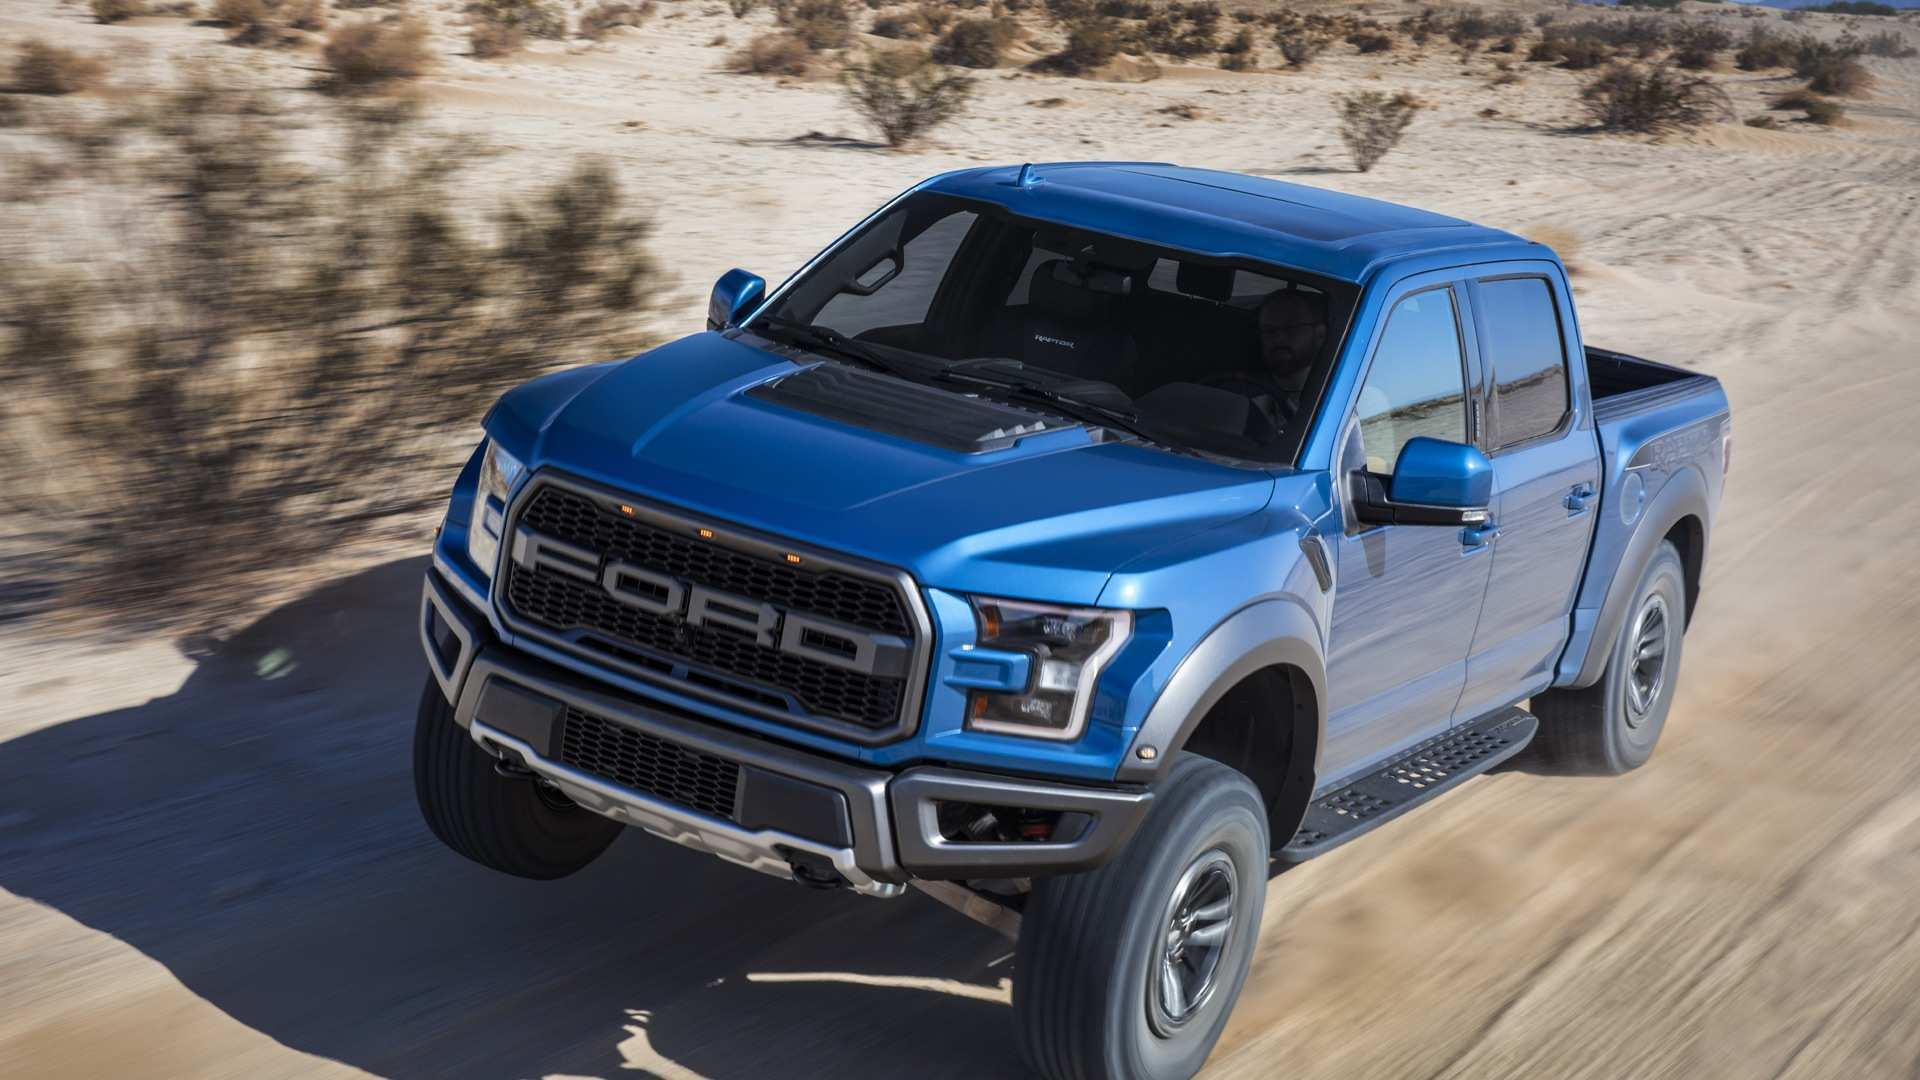 83 Great 2020 Ford F150 Raptor Rumors by 2020 Ford F150 Raptor